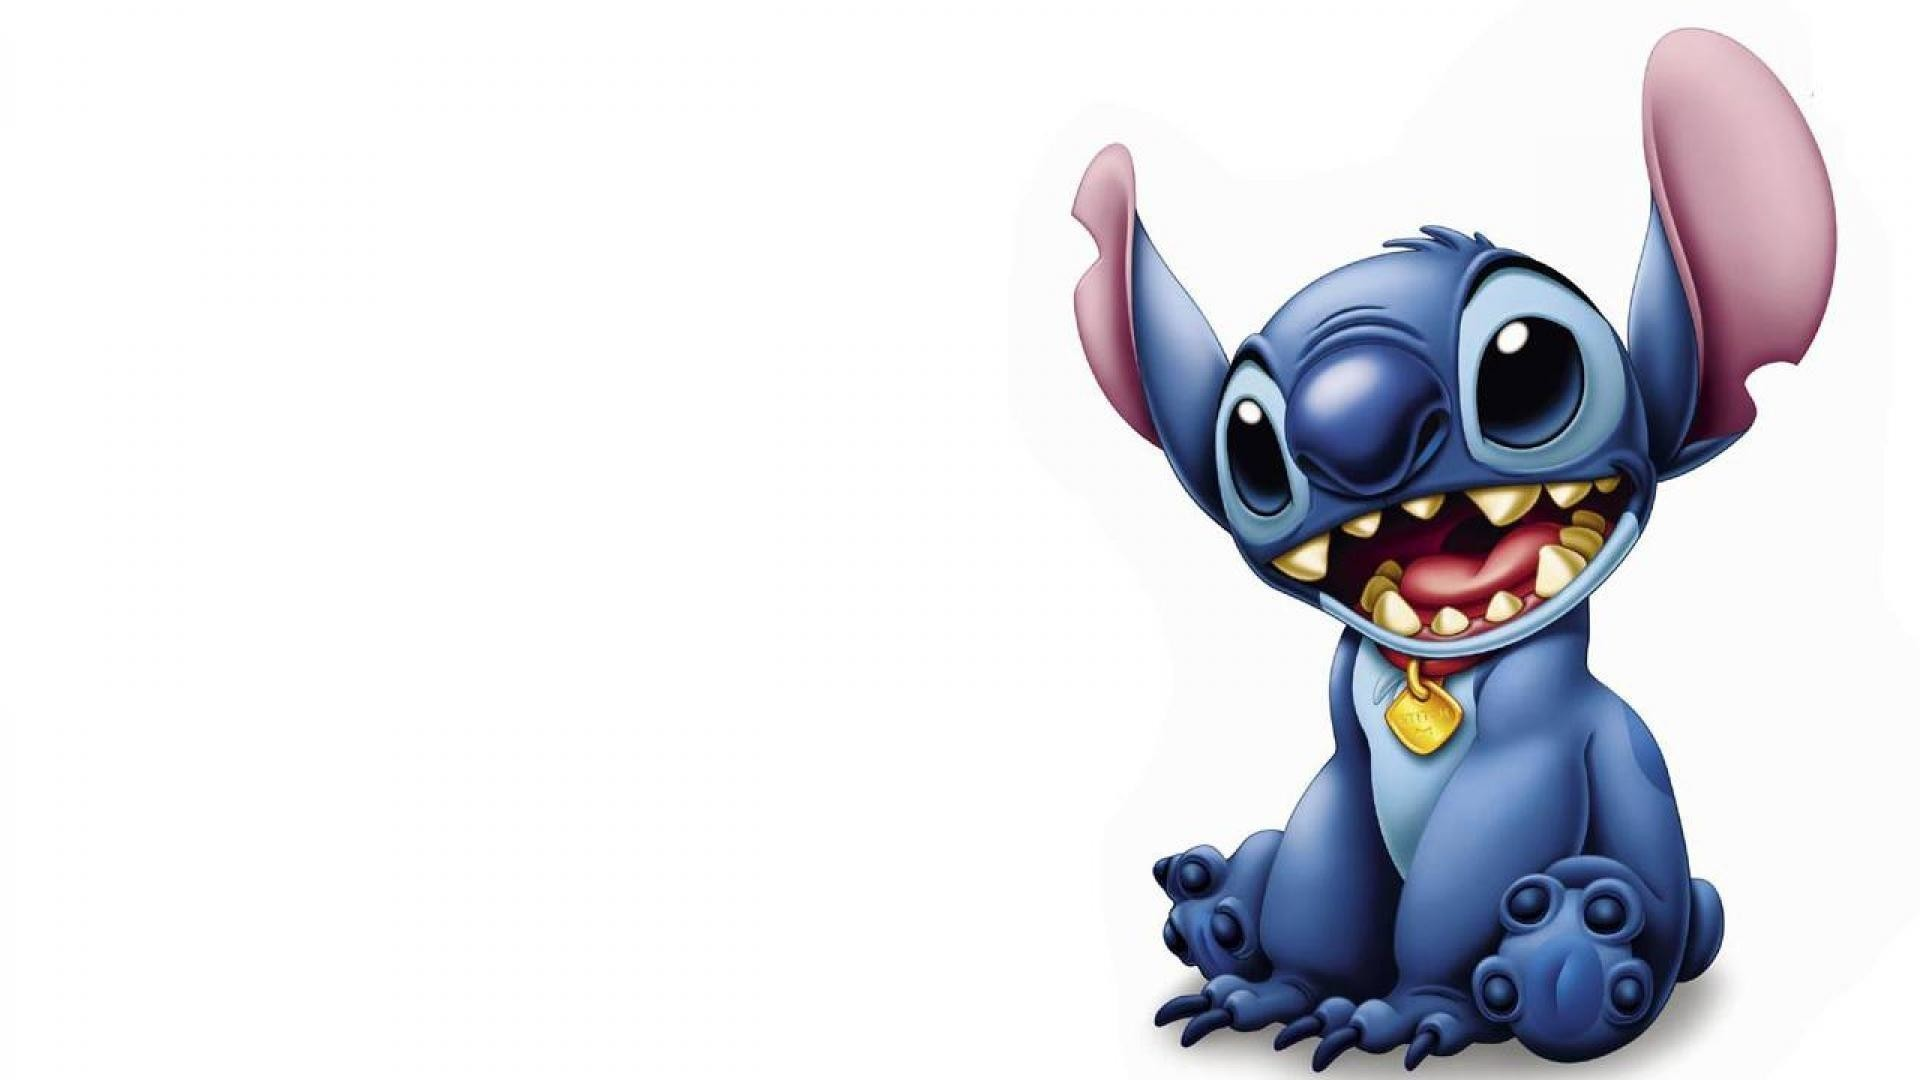 1920x1080 Stitch Wallpapers HD | Wallpapers, Backgrounds, Images, Art Photos.